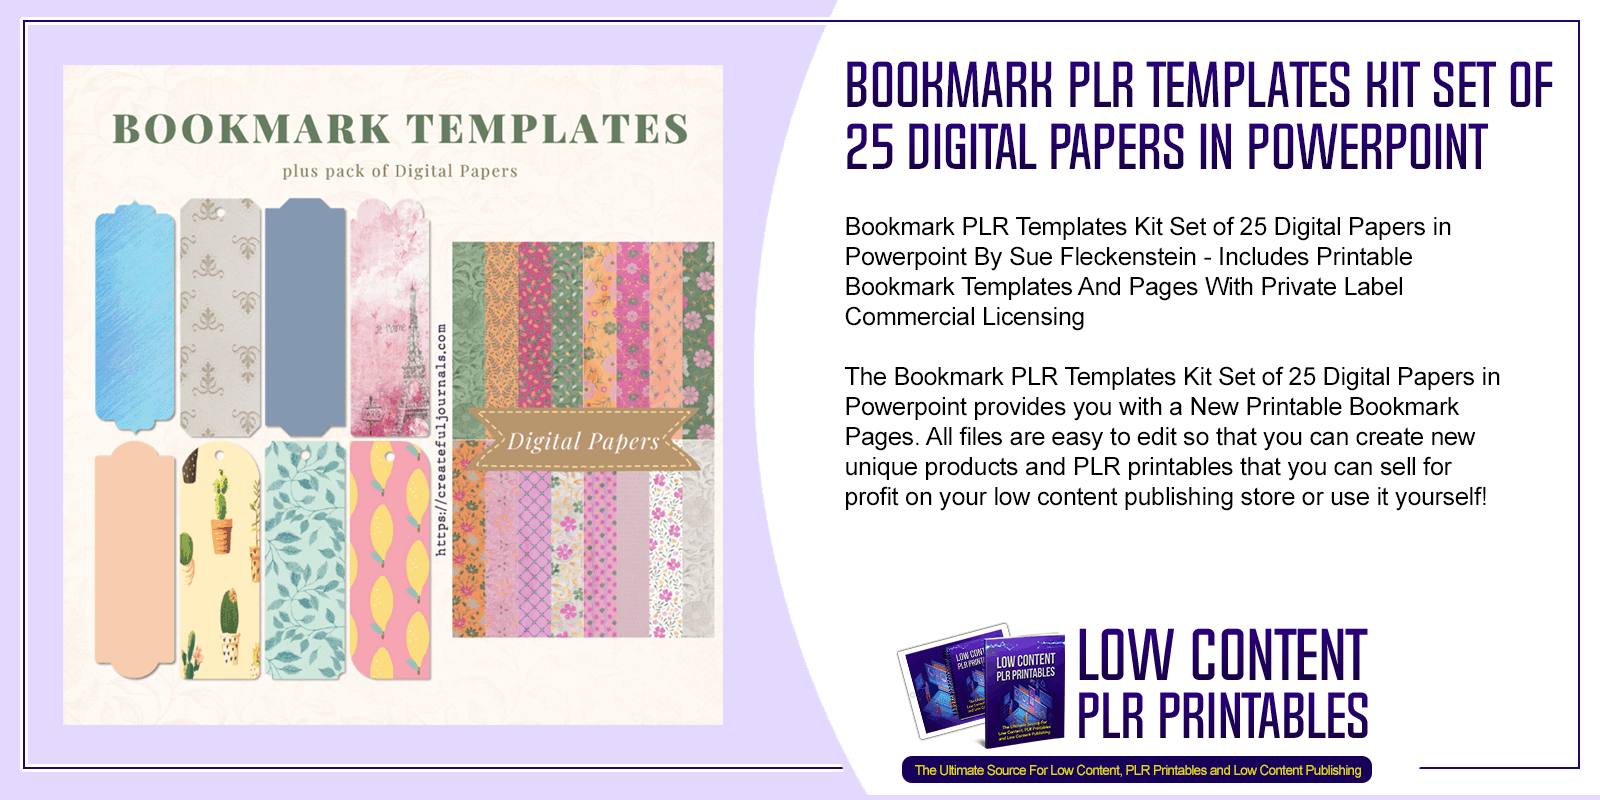 Bookmark PLR Templates Kit Set of 25 Digital Papers in Powerpoint